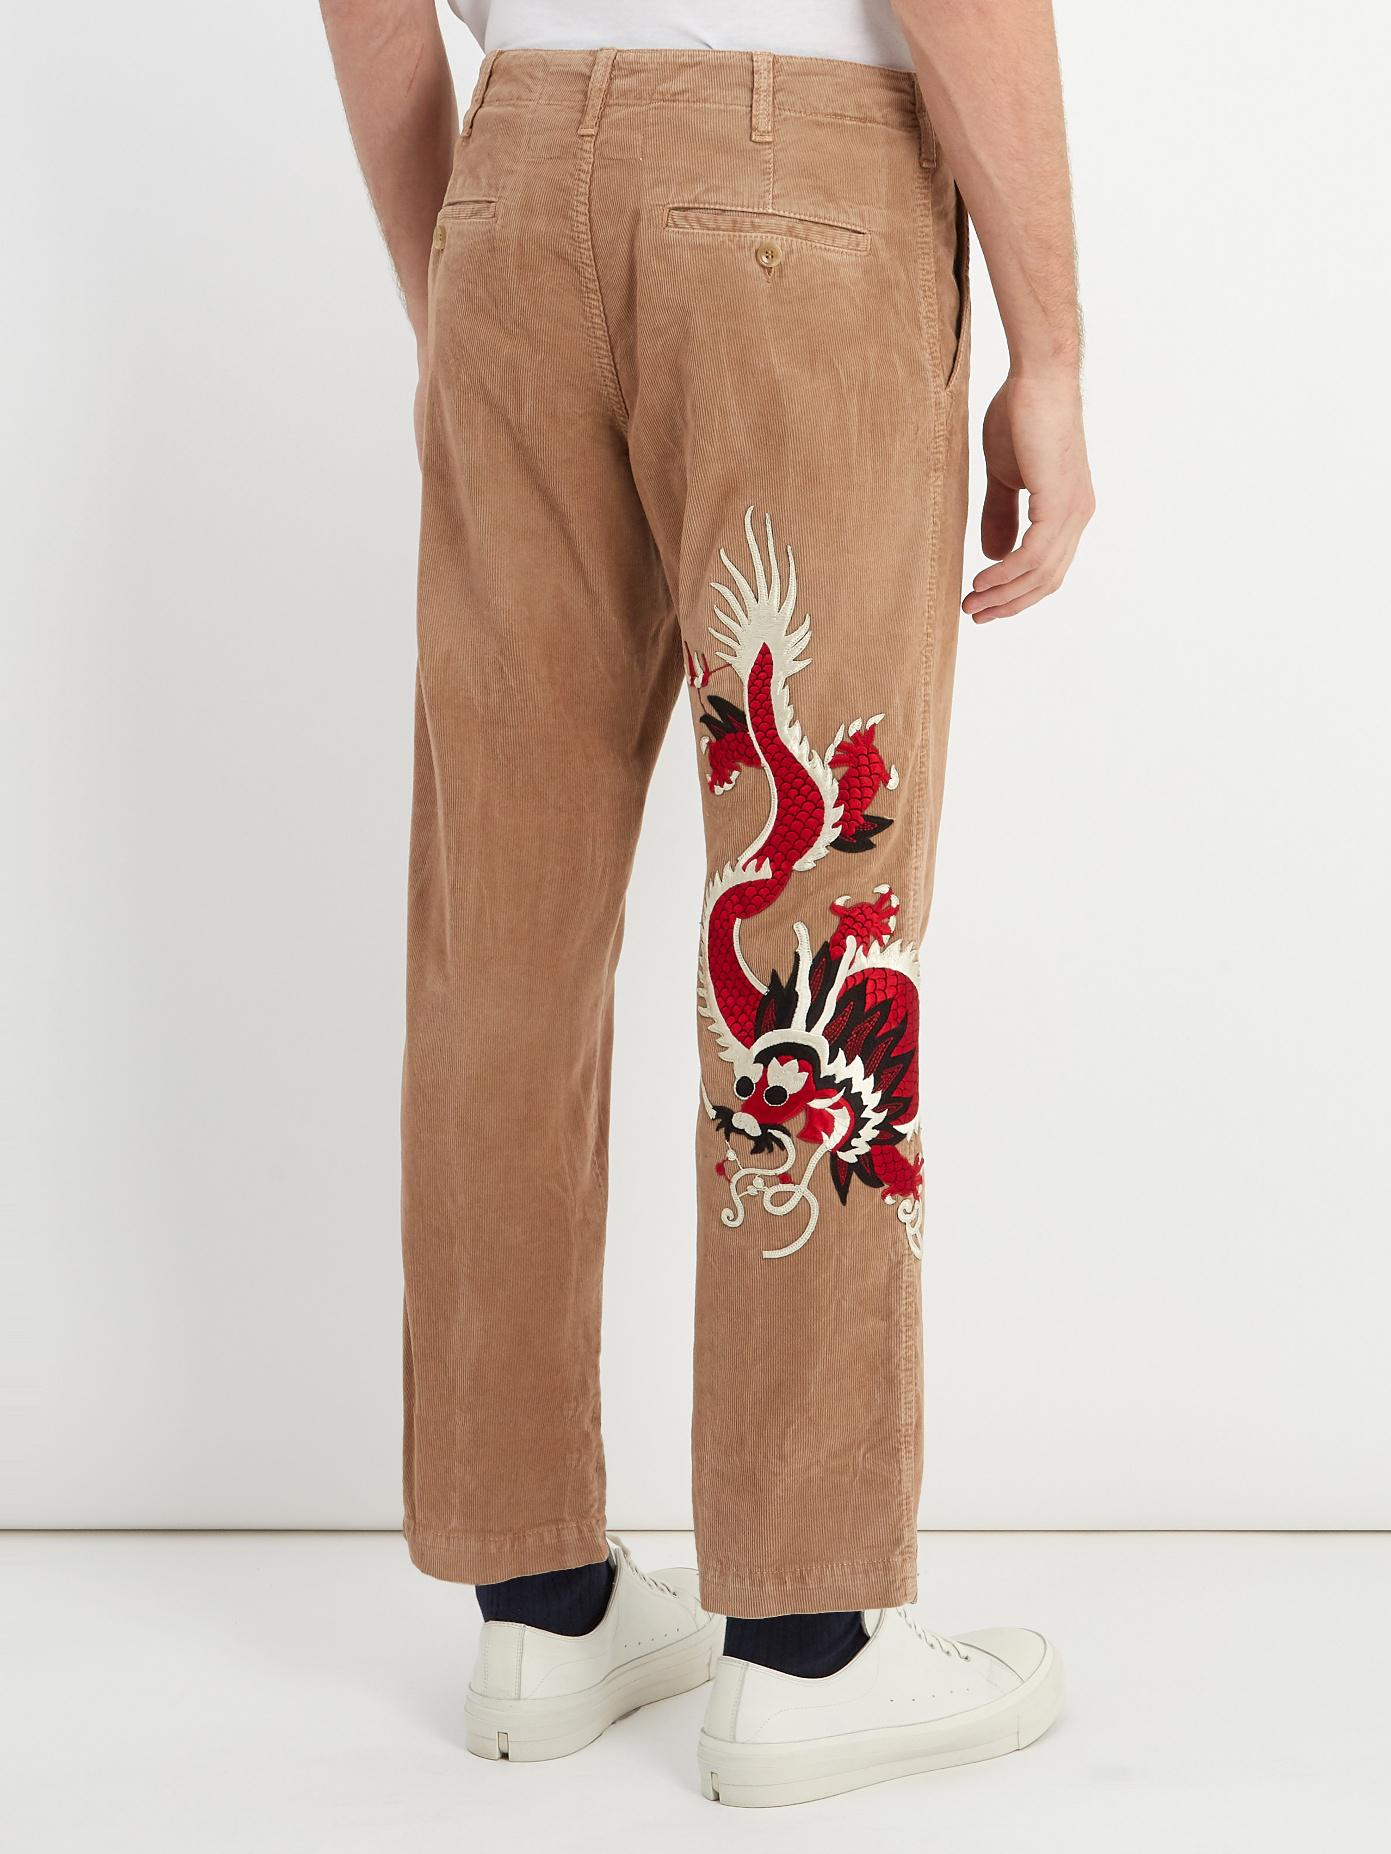 Dragon-embroidered cropped corduroy trousers Gucci AbpKRhi6a1